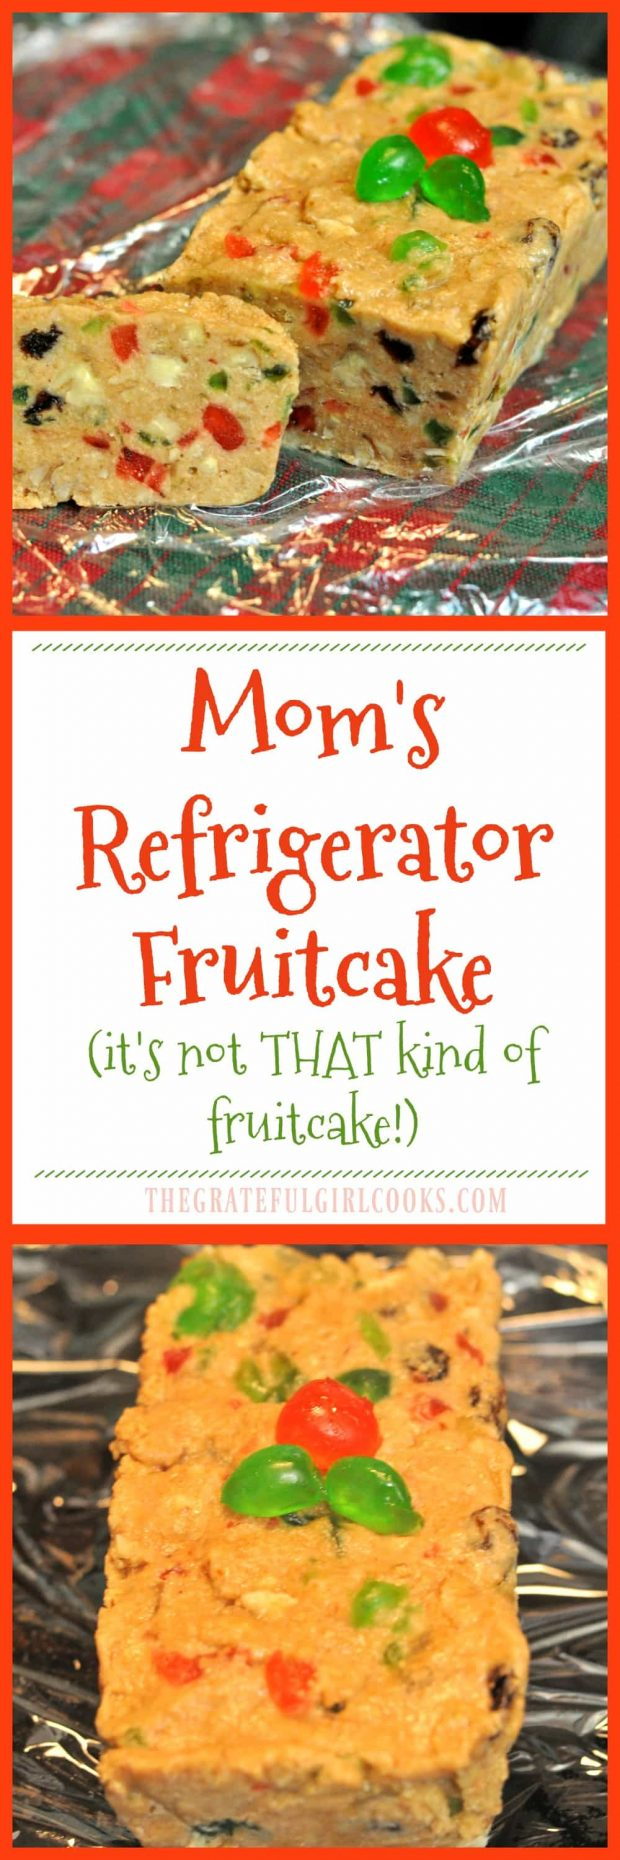 Mom's Refrigerator Fruitcake (it's not THAT kind of fruitcake!) / The Grateful Girl Cooks! This delicious Christmas treat actually is chewy like candy!